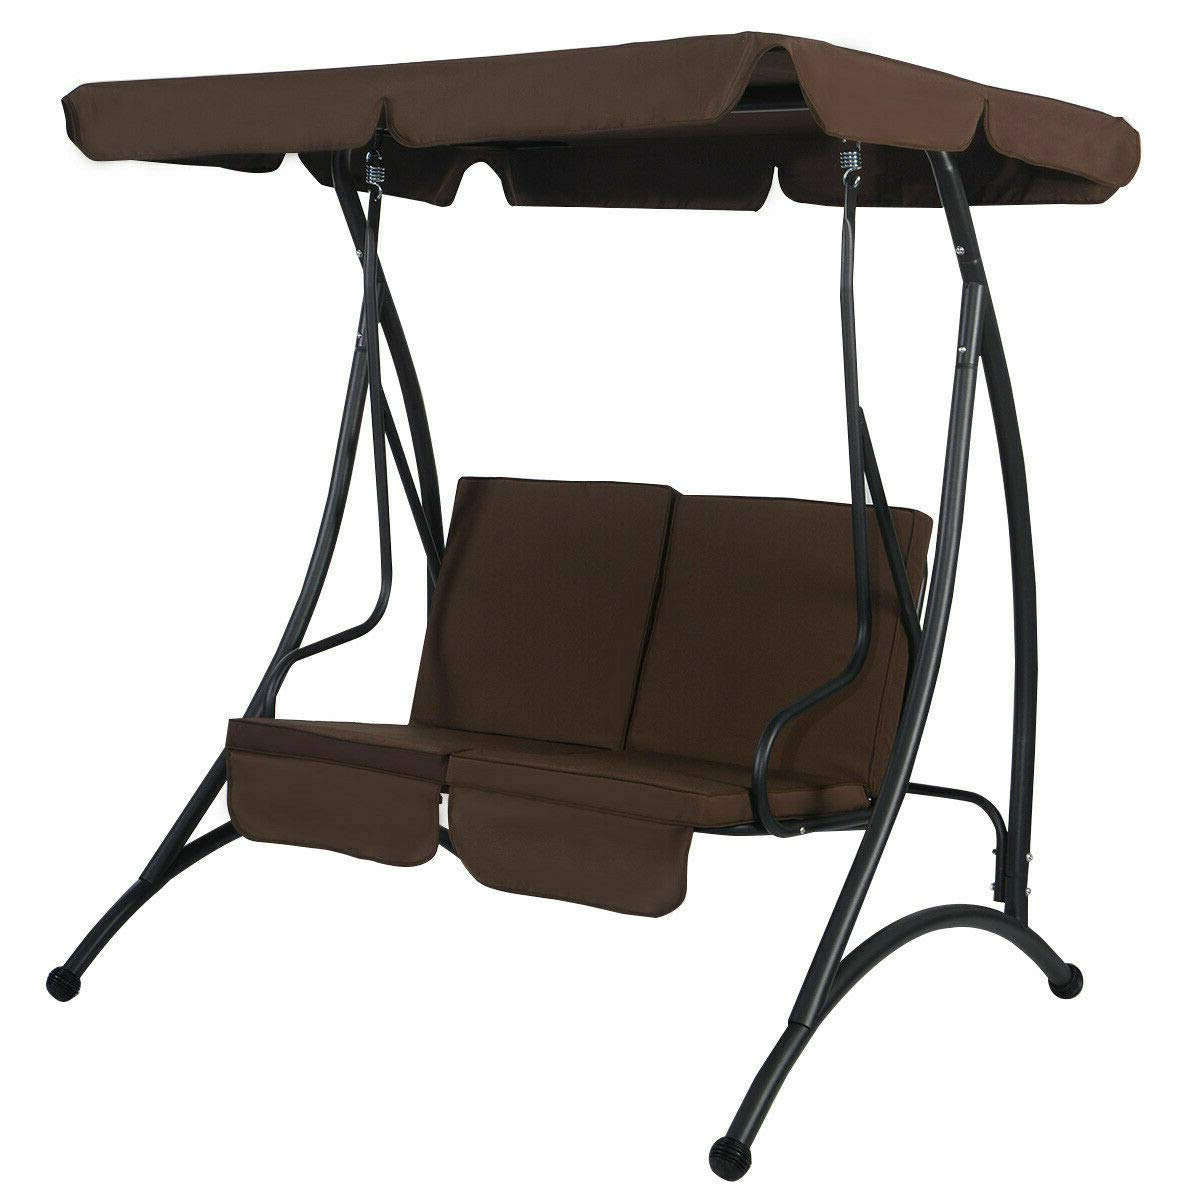 2 Person Black Steel Outdoor Swings Within Current Amazon: Sretan 2 Person Canopy Swing Chair Brown Black (View 7 of 30)